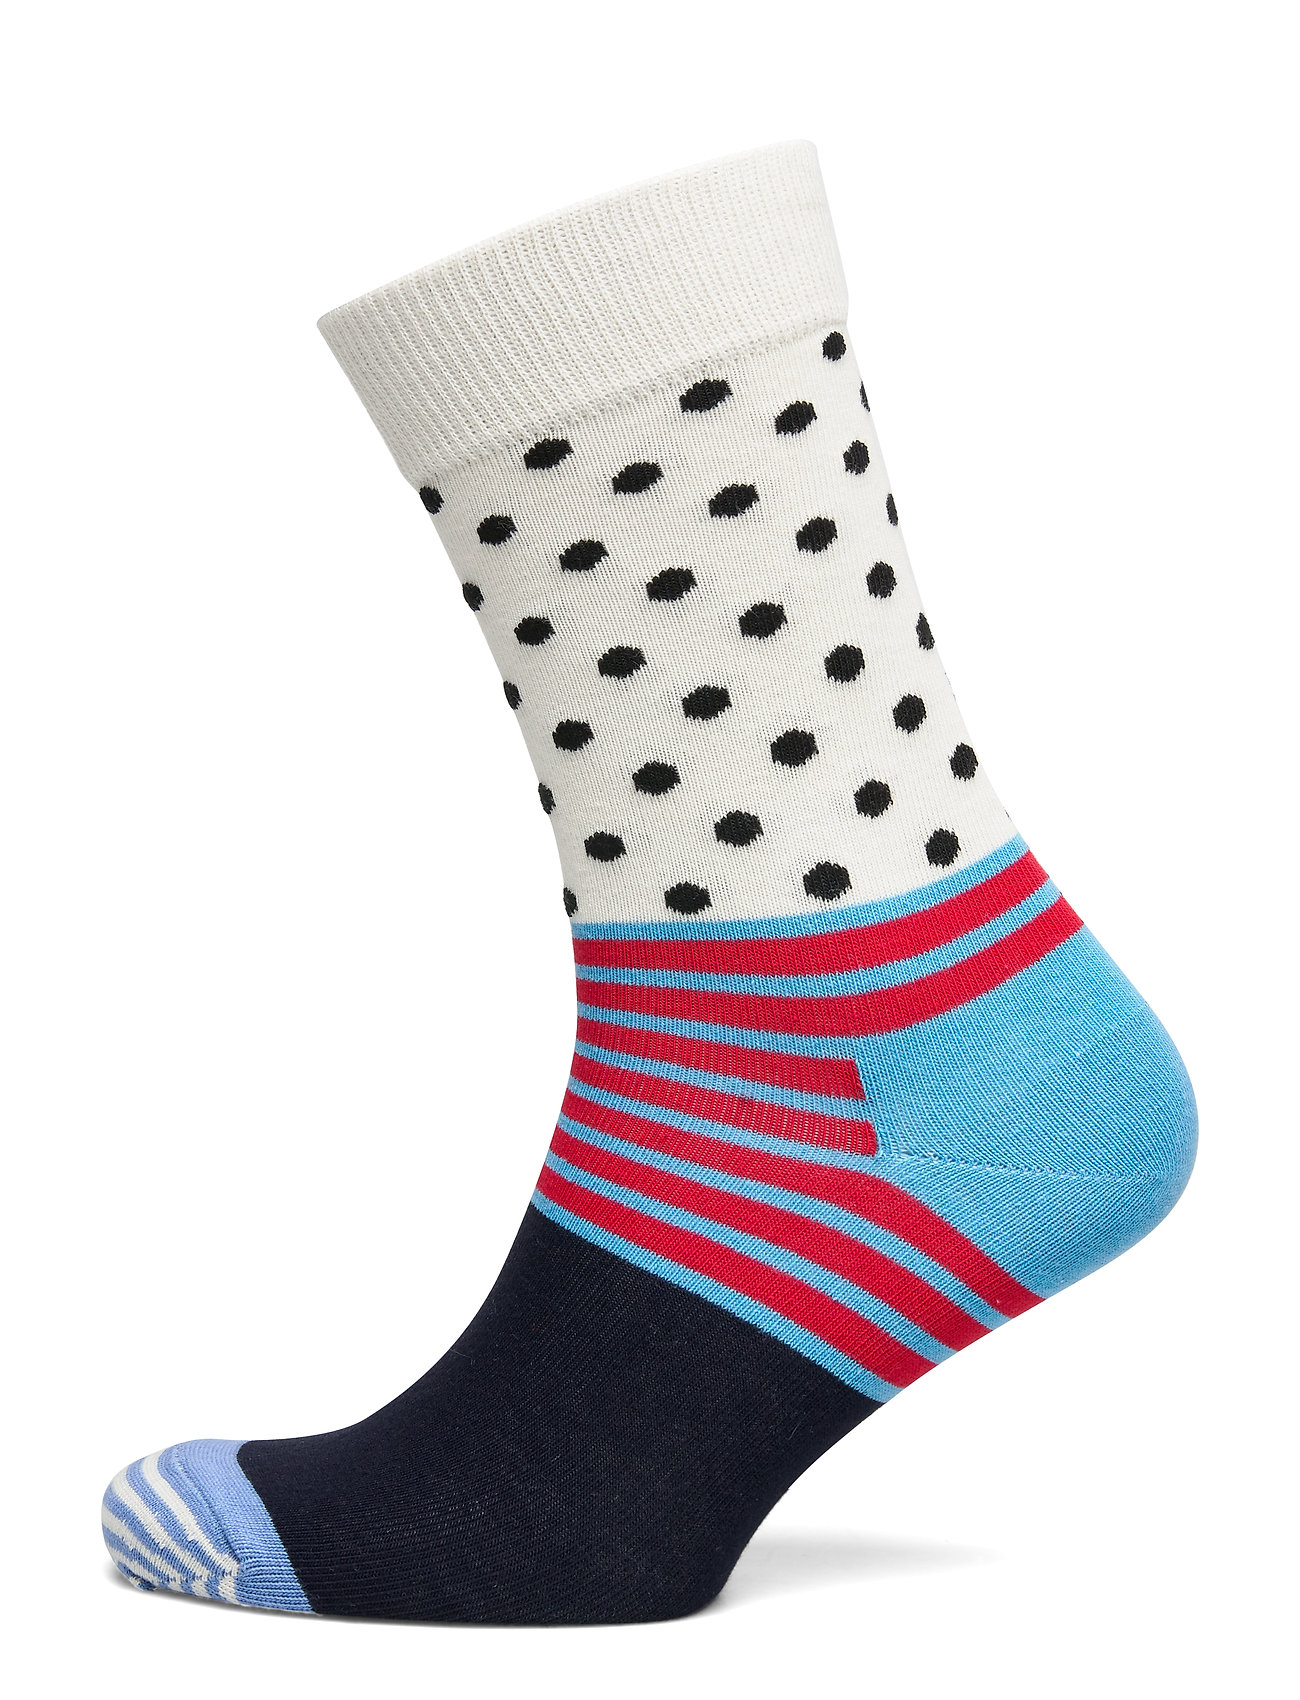 Happy Socks Stripe And Dot Sock - BLUE